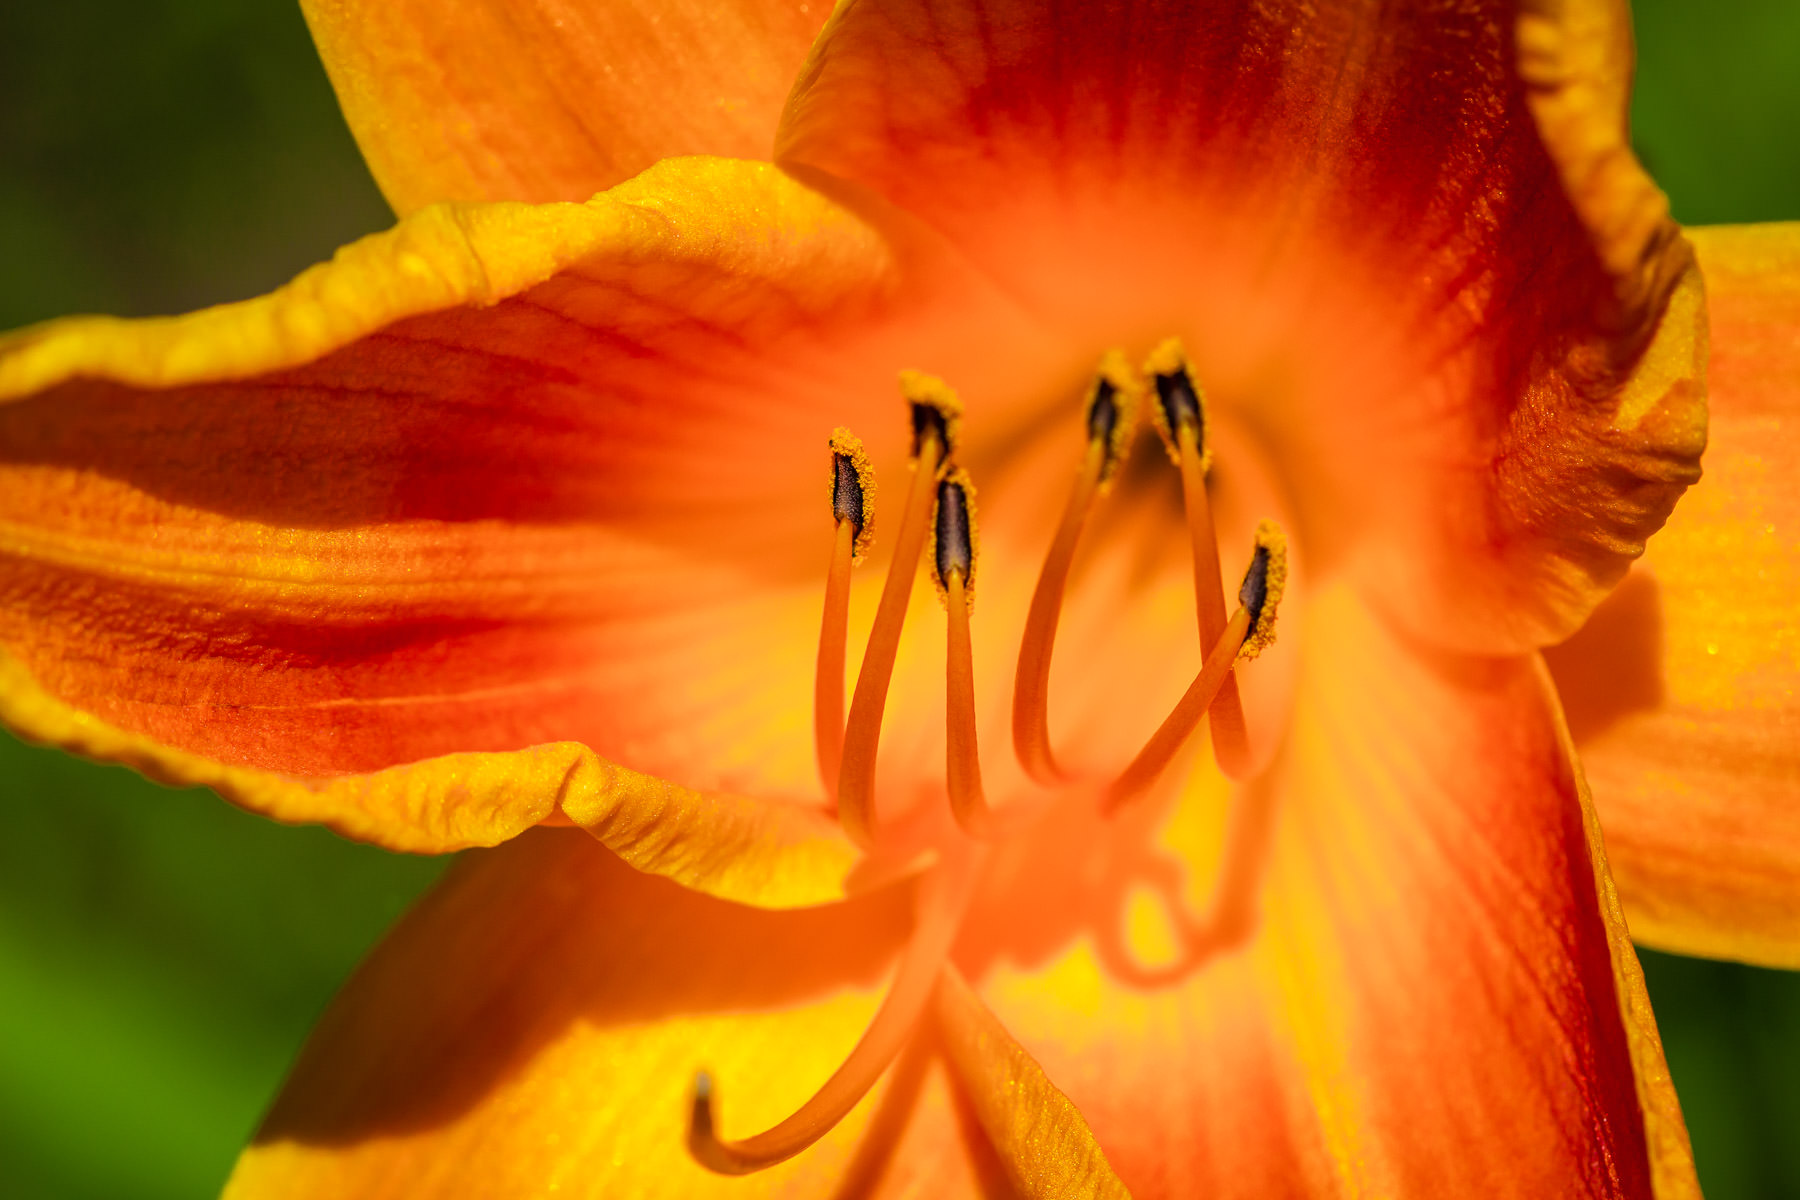 Stamens in an orange flower spotted in Fair Park, Dallas, Texas.